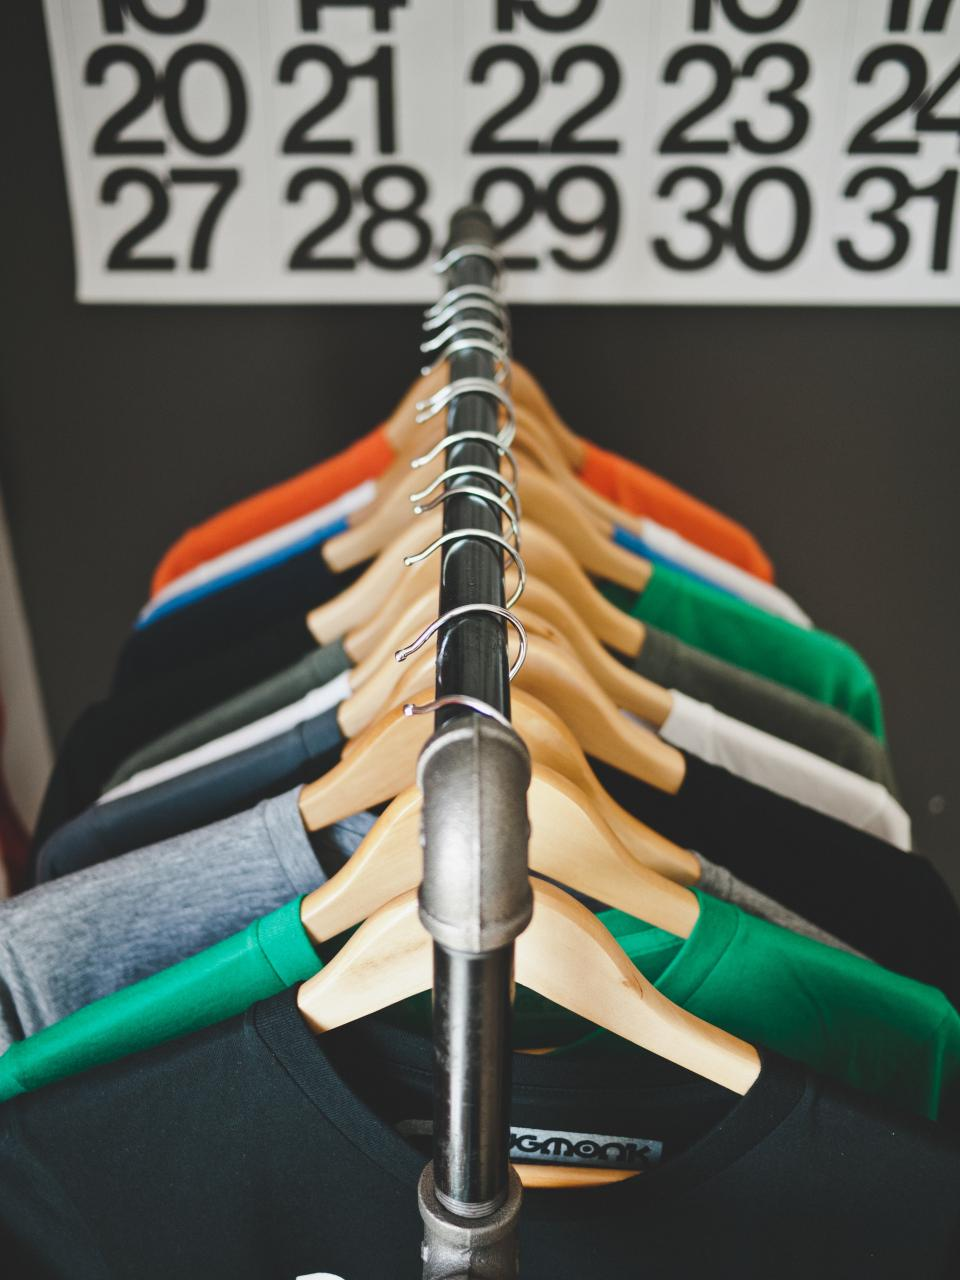 Free stock photo of clothes shirts